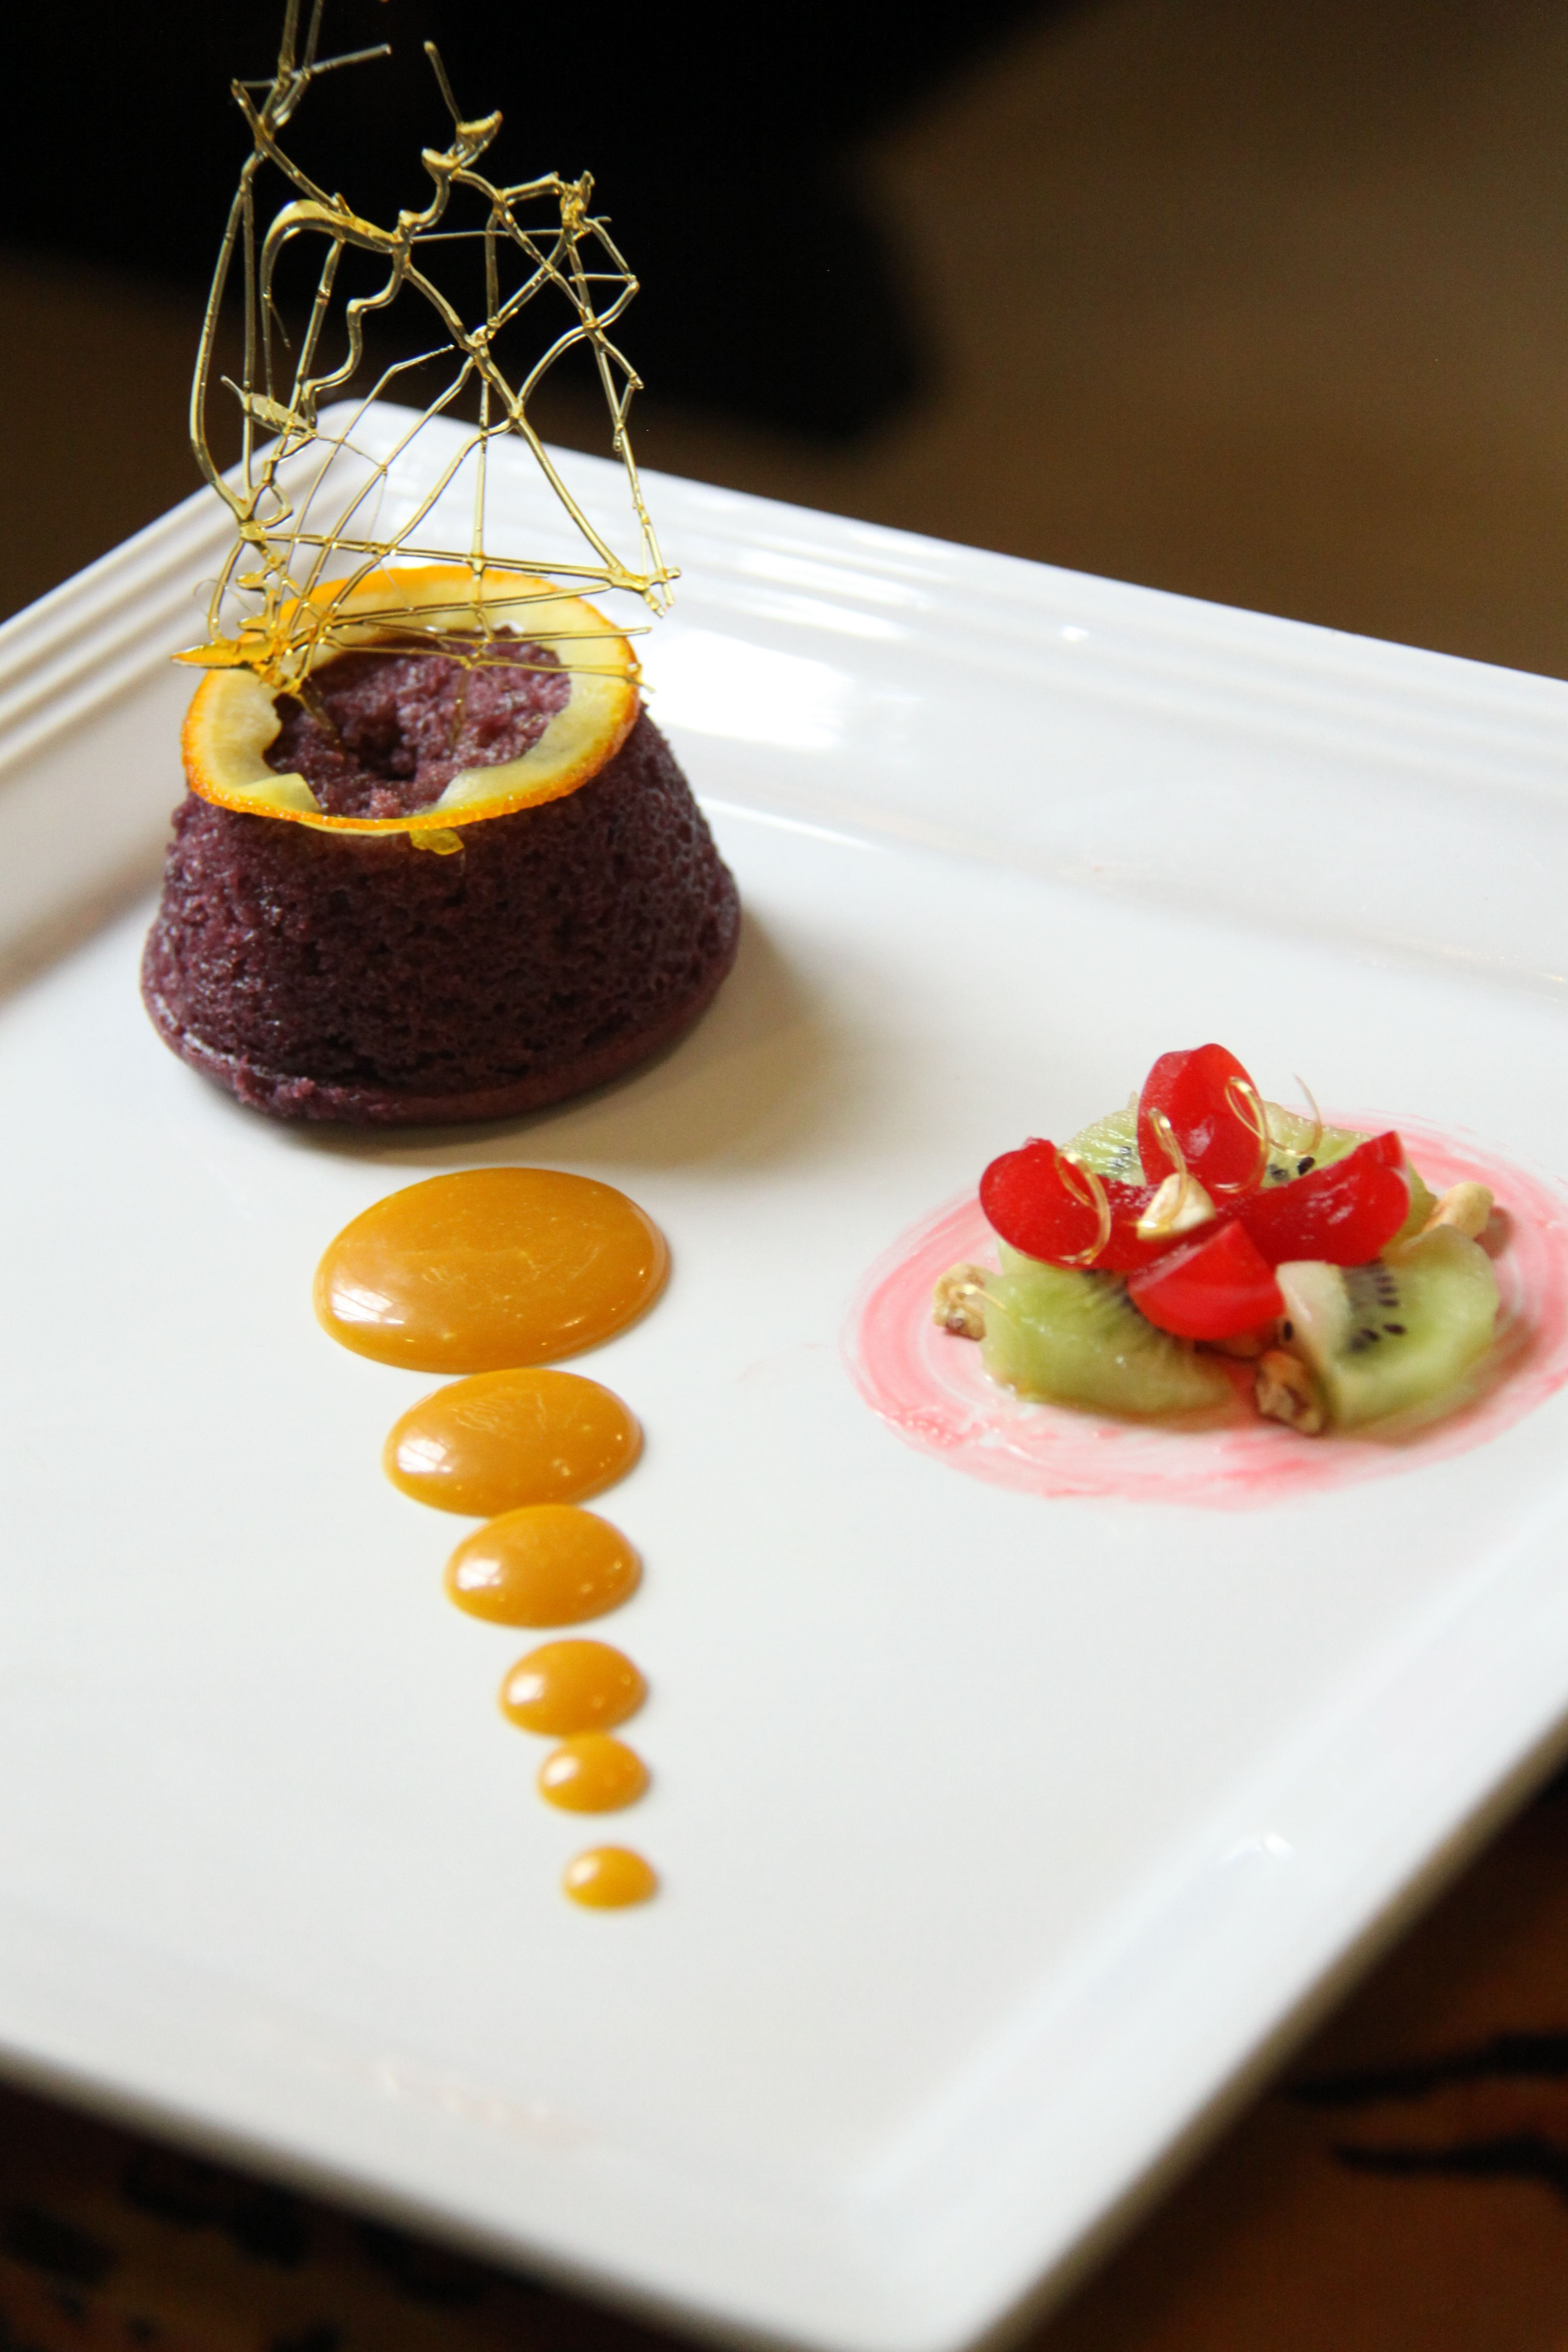 Platted Desserts Ube Steam Pudding With Caramel Sauce And